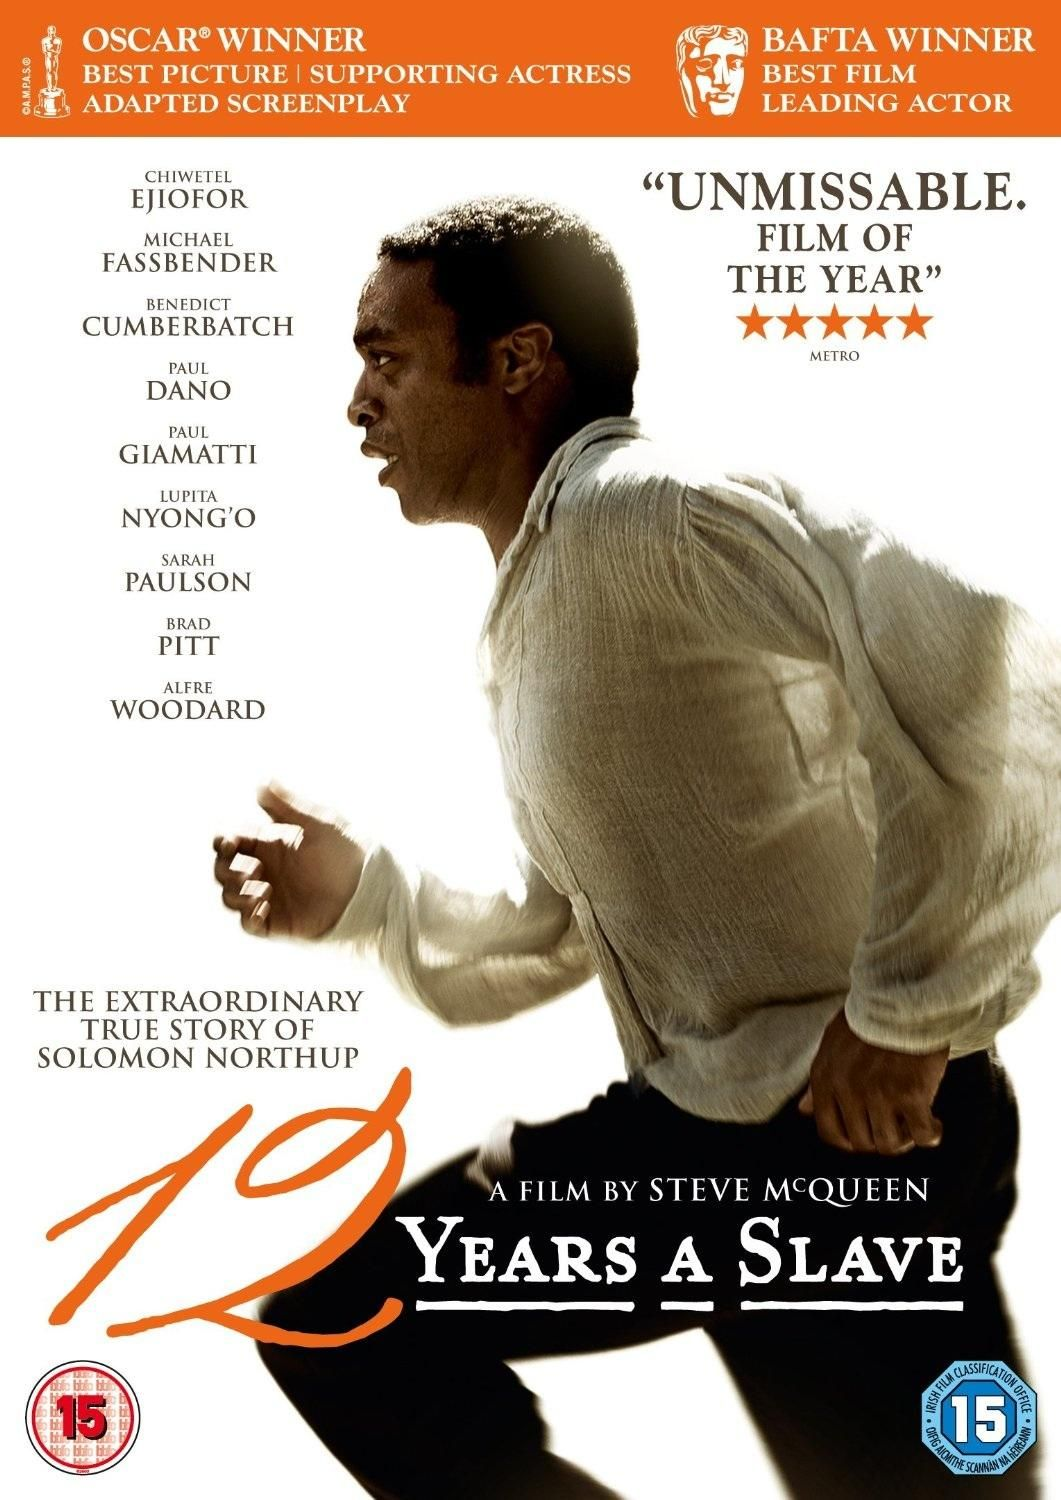 12 Years A Slave DVD review